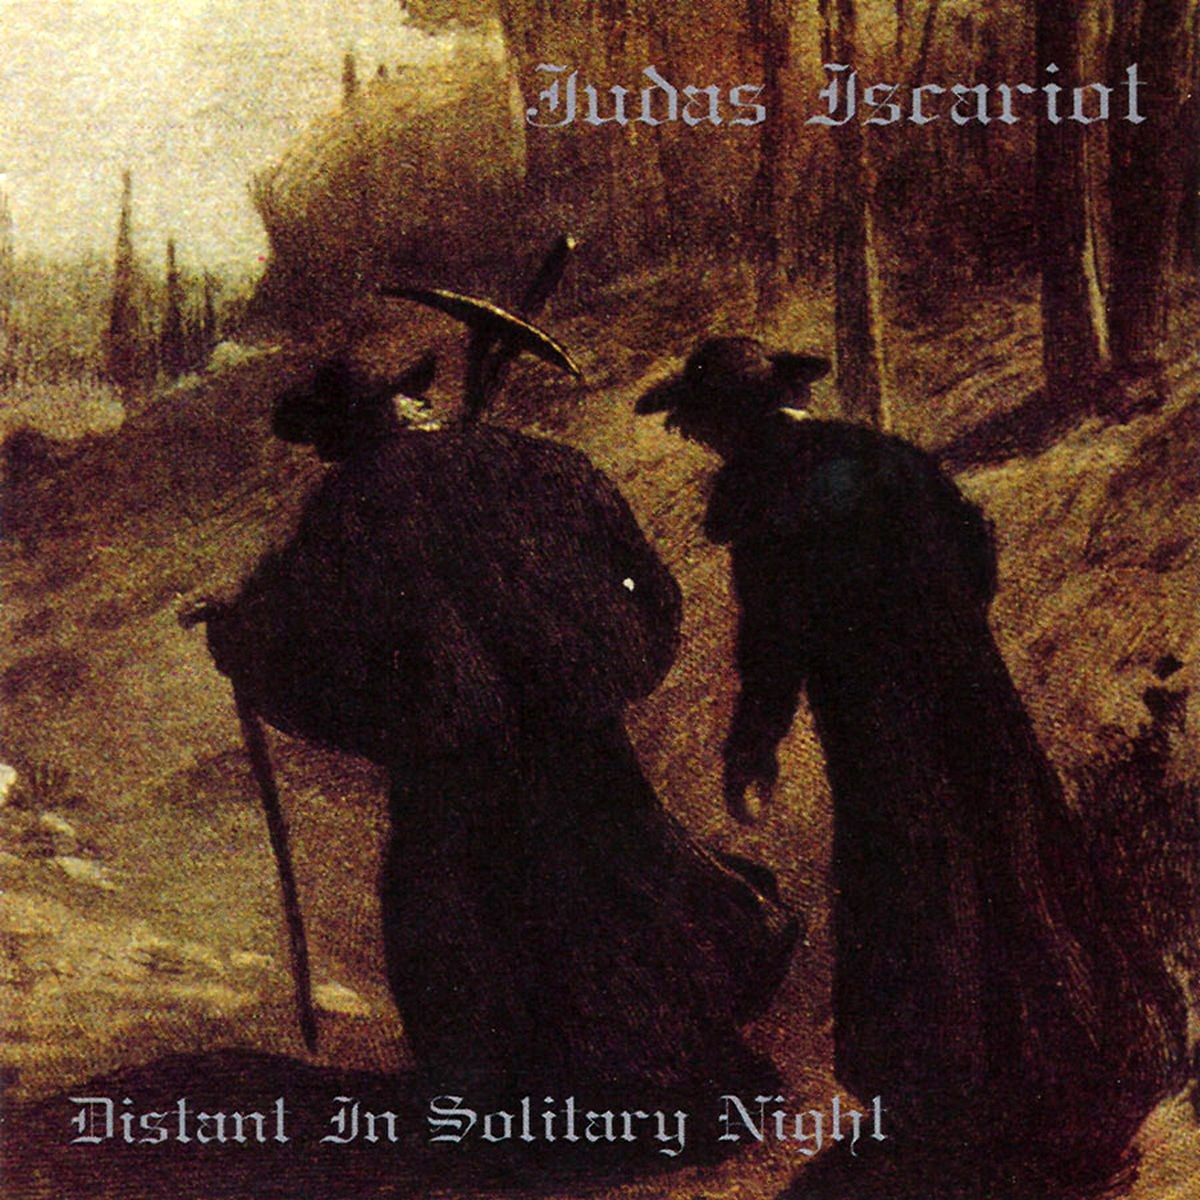 Review for Judas Iscariot - Distant in Solitary Night